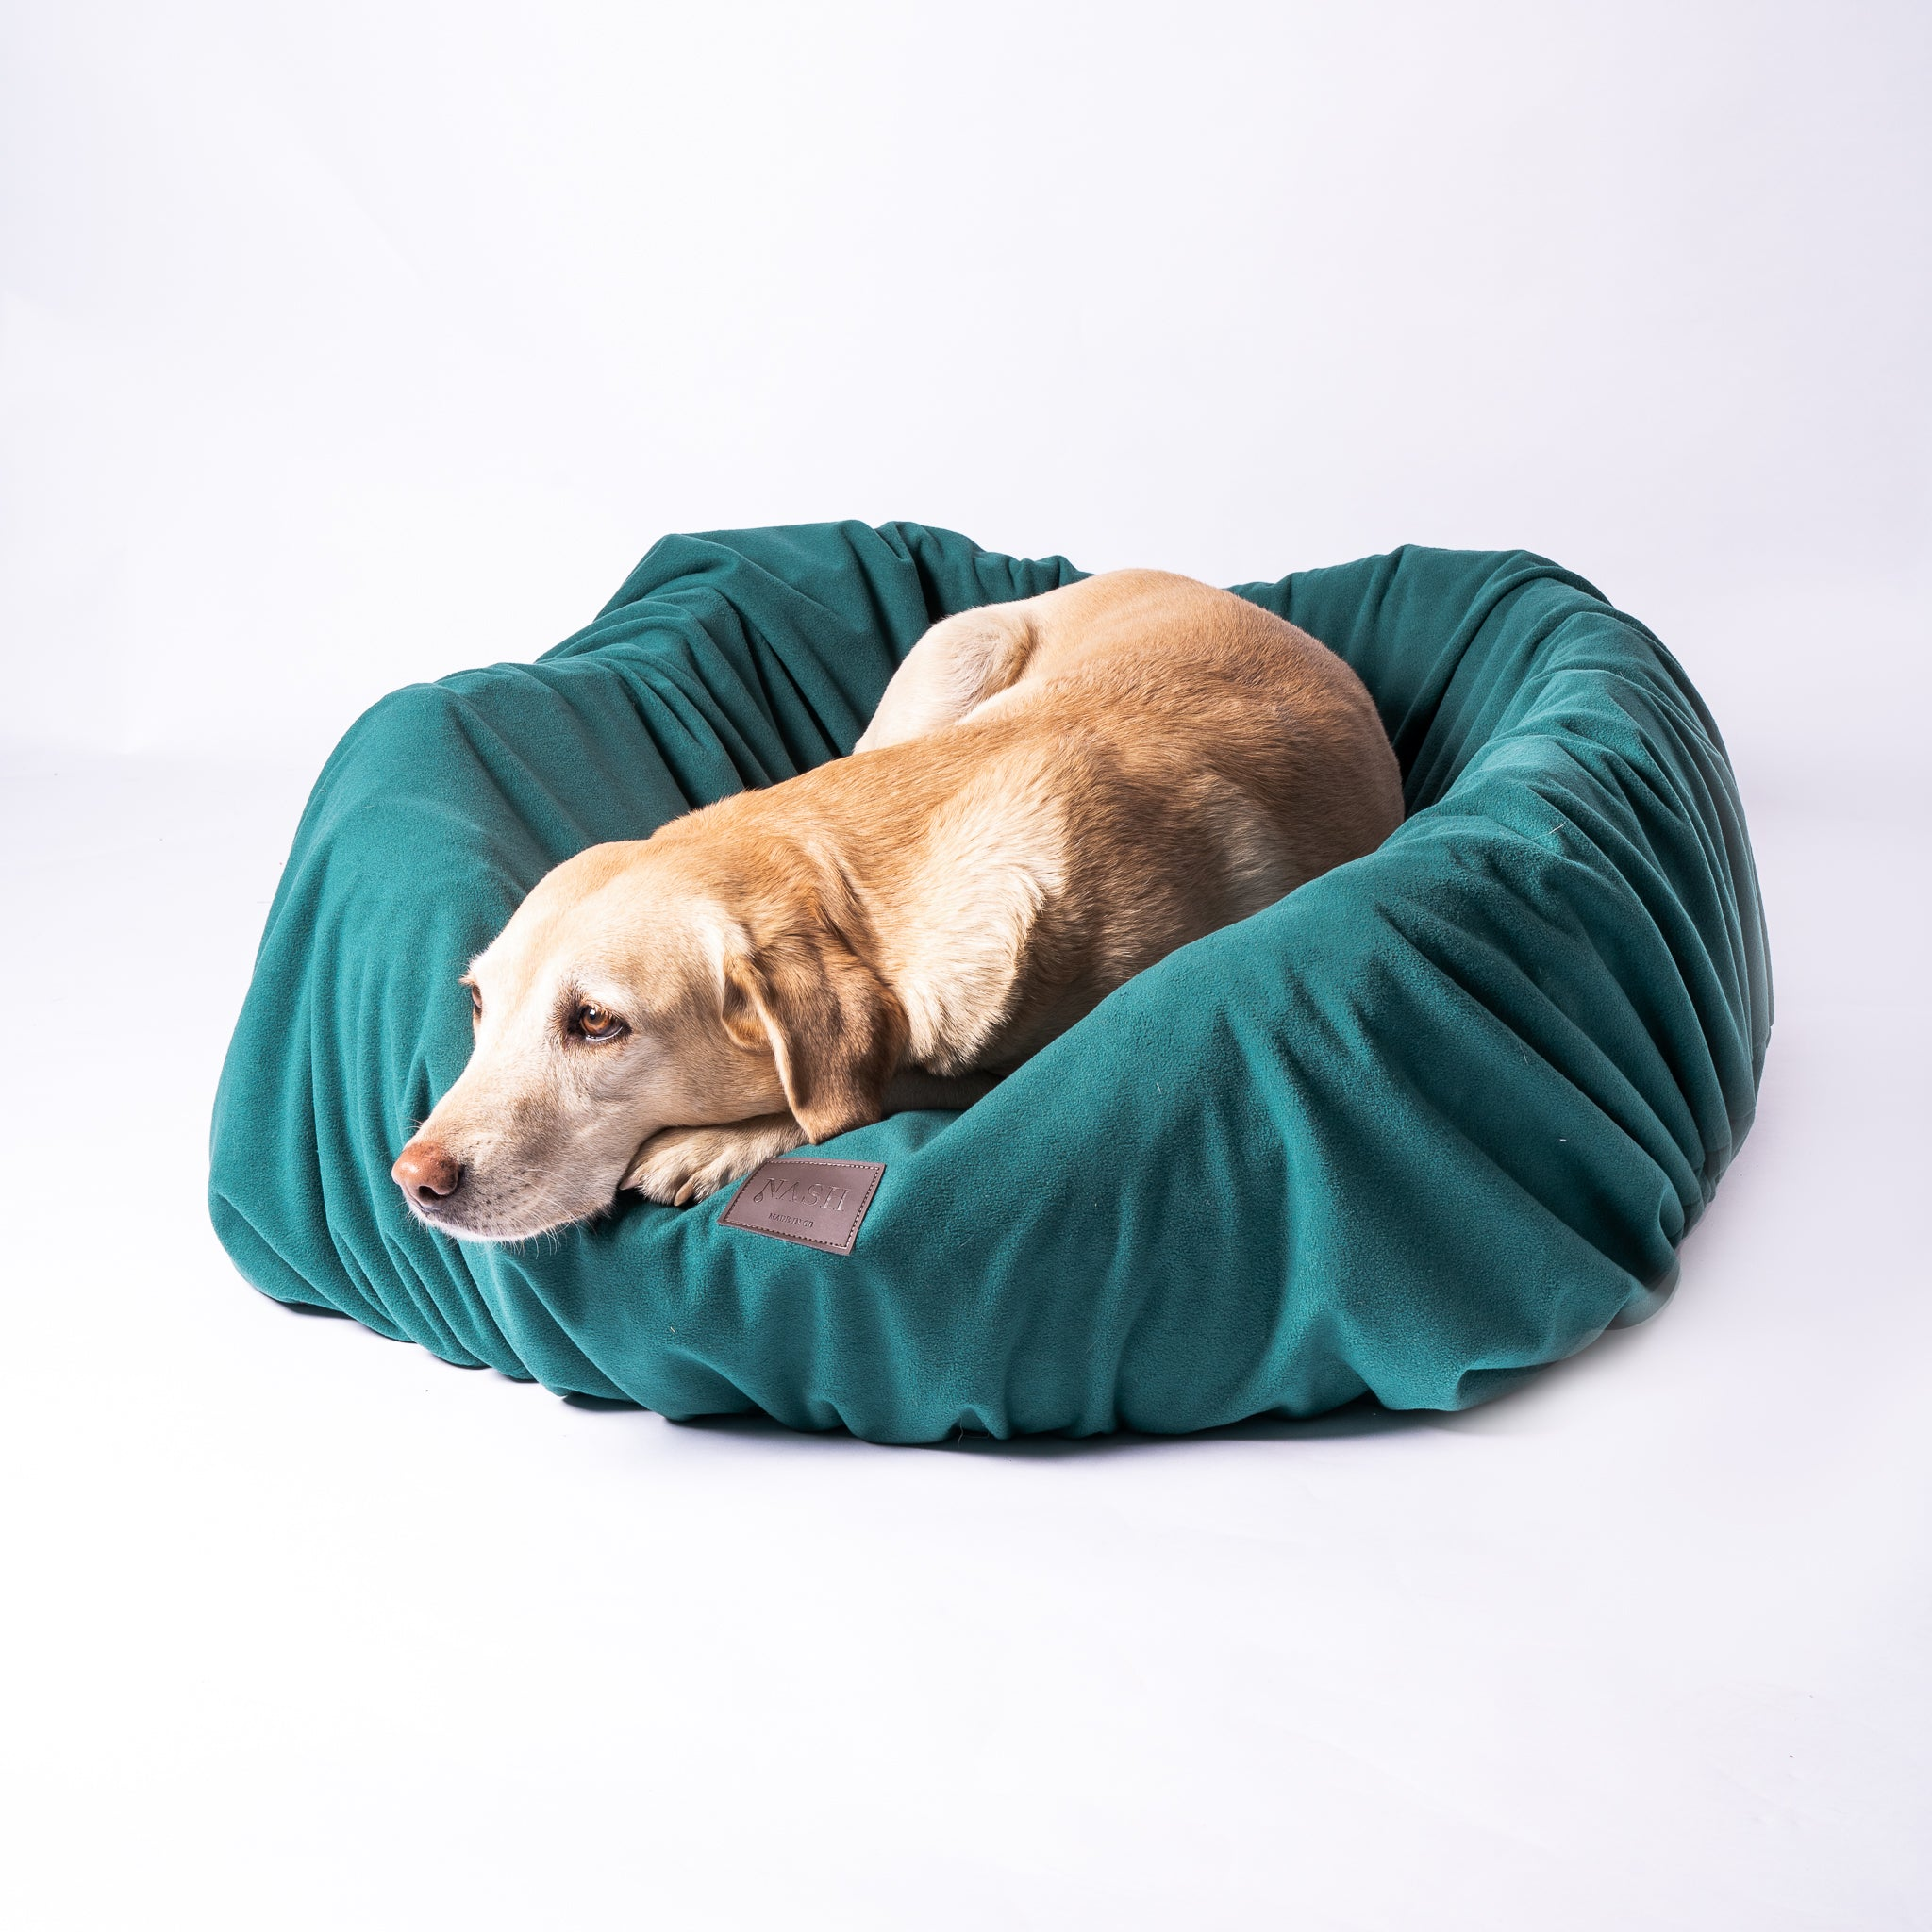 Waterproof Microfleece Dog Bed Cover - Shop Bamboo Dog Drying Coats, bed covers, drying mitts & throw Online!